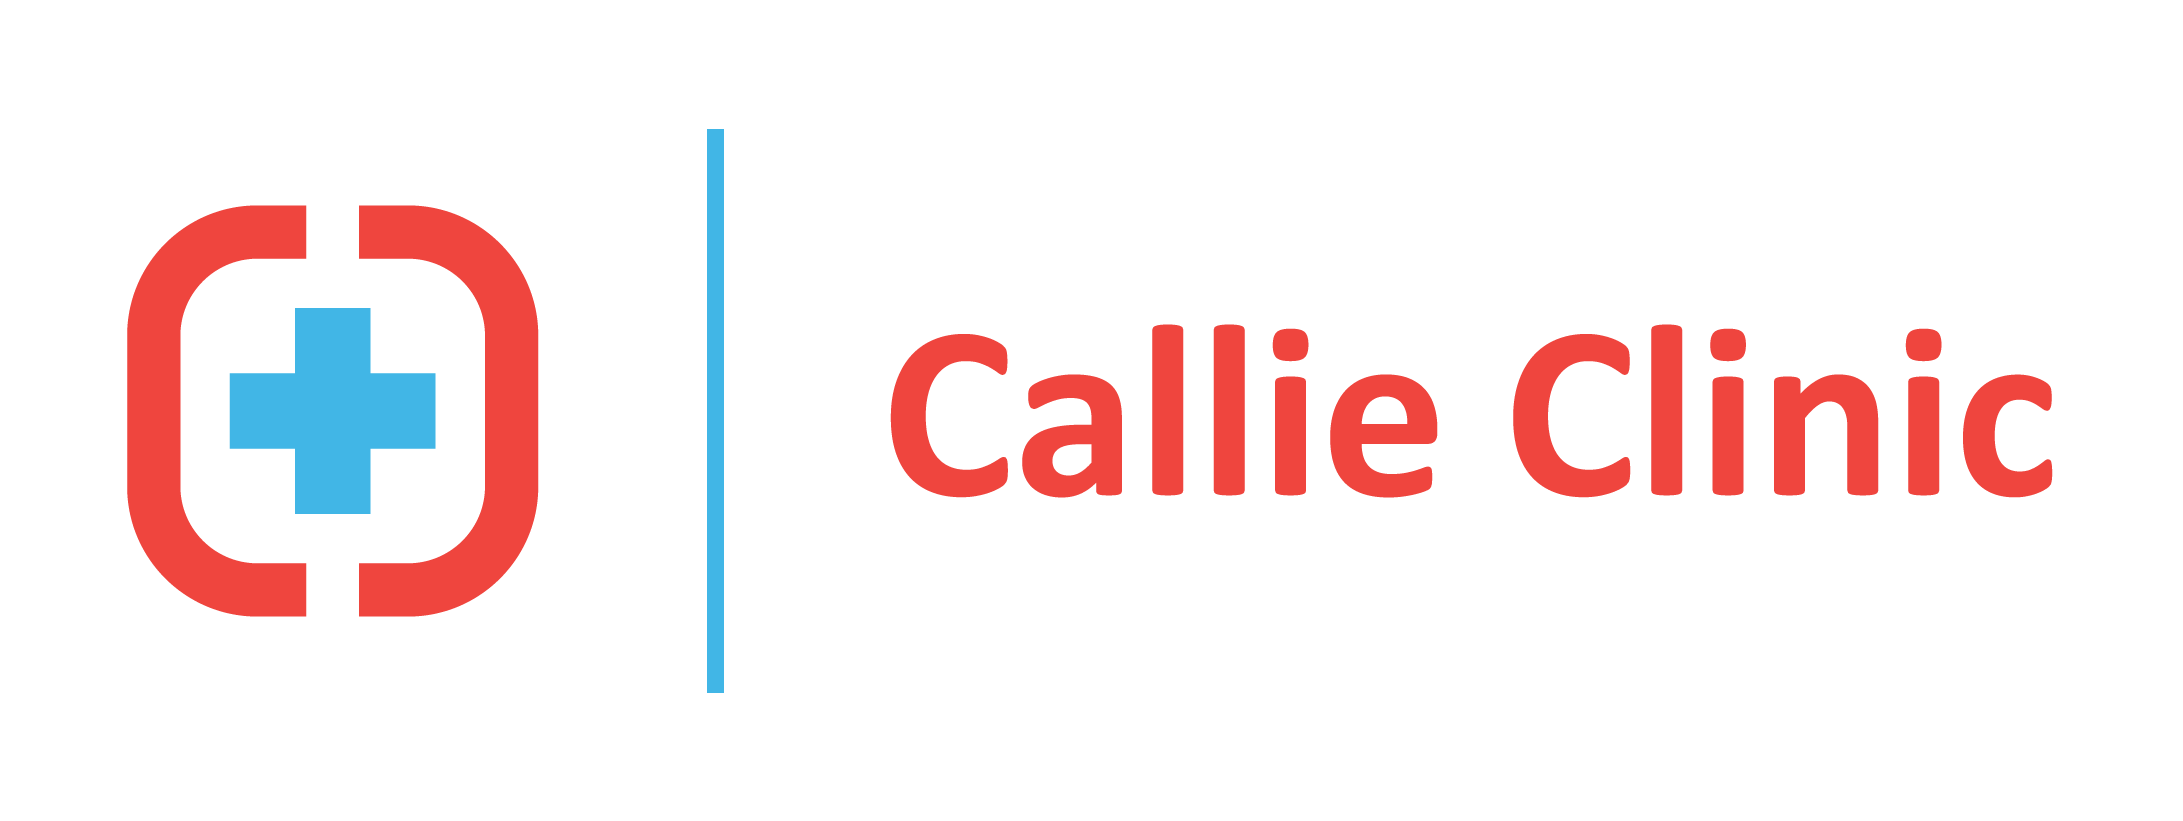 callie clinic logo